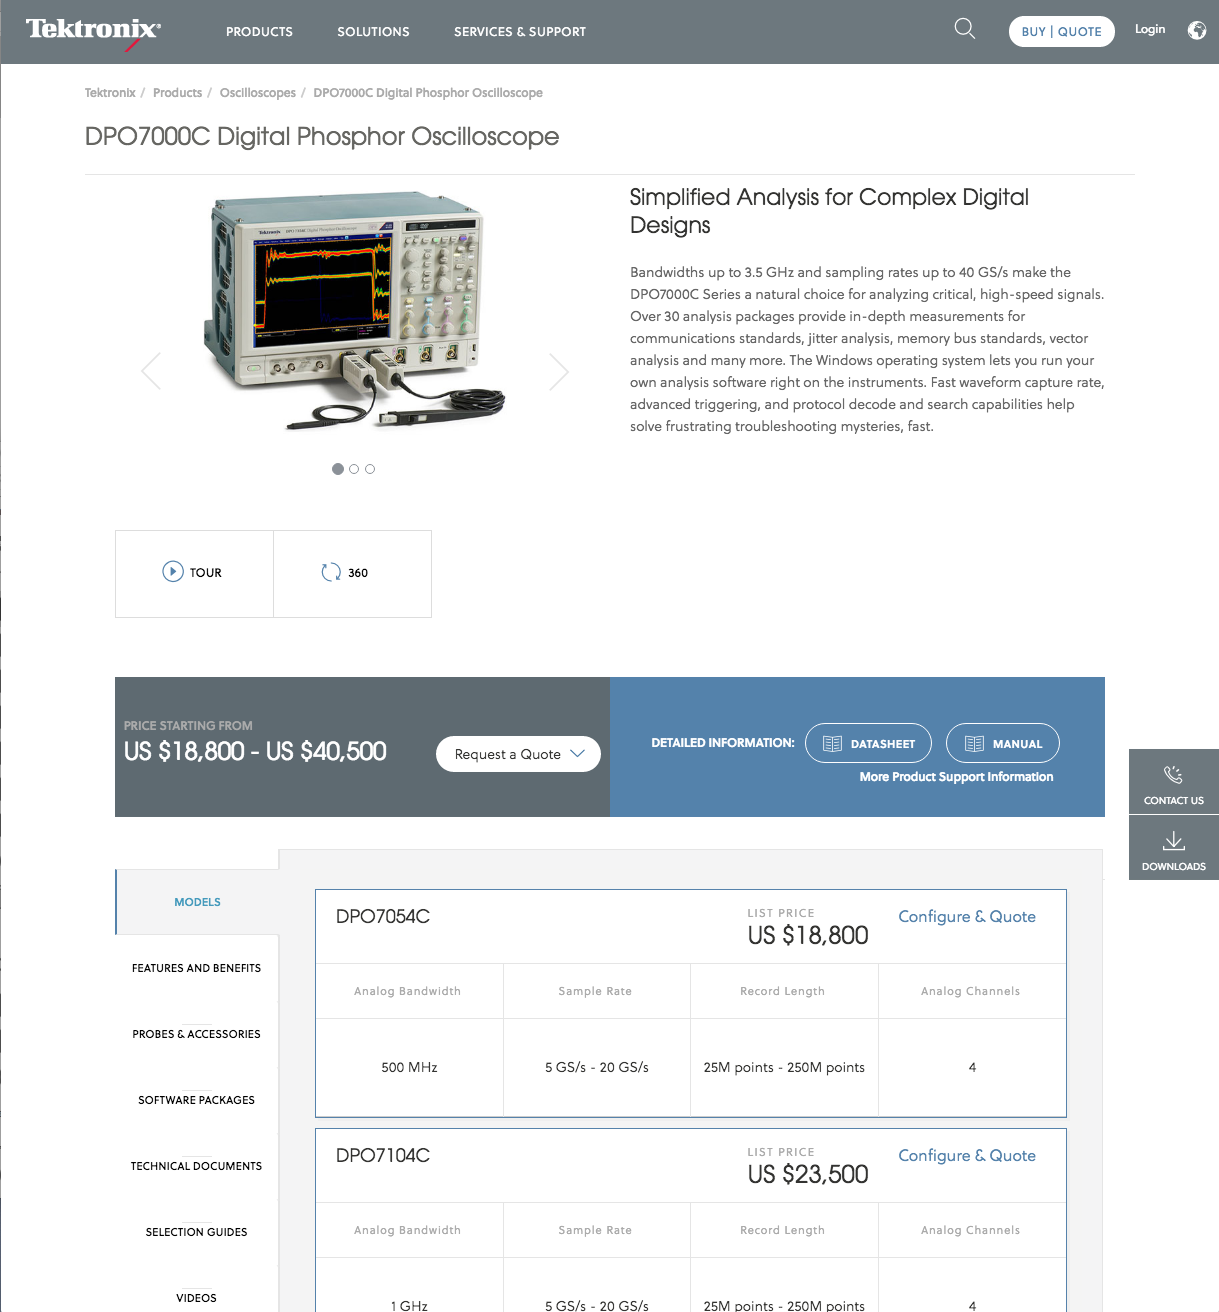 International Tektronix Site